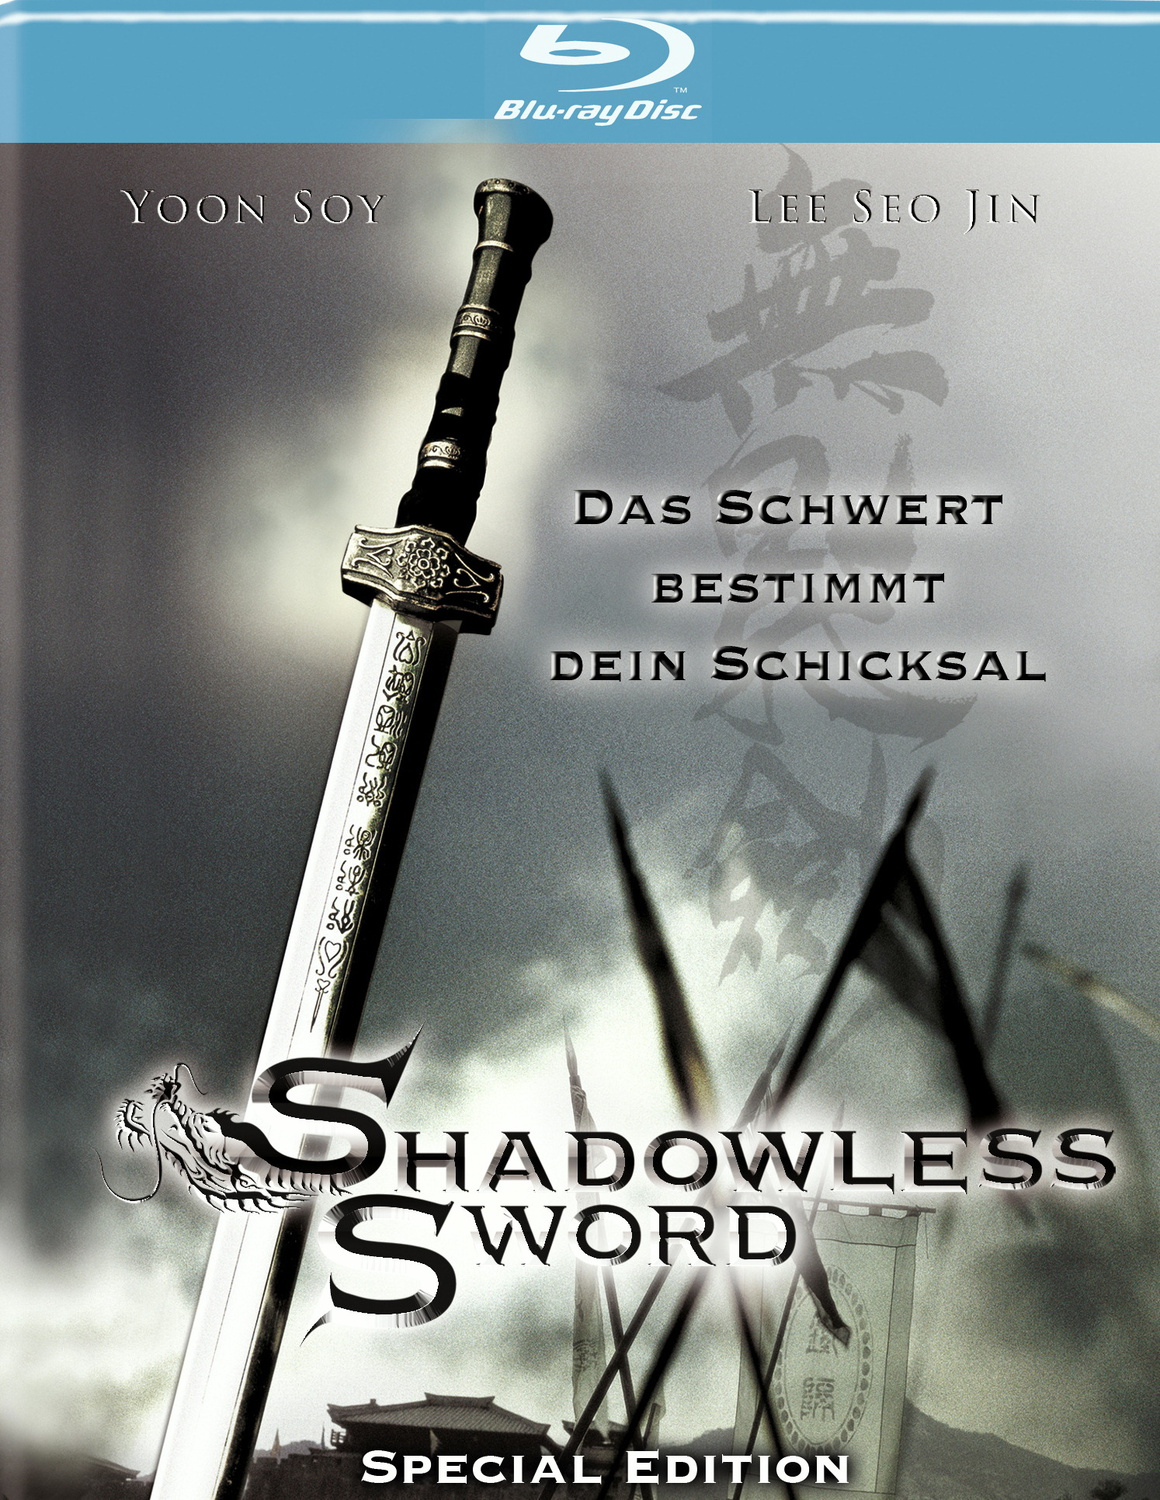 Shadowless Sword - Special Edition